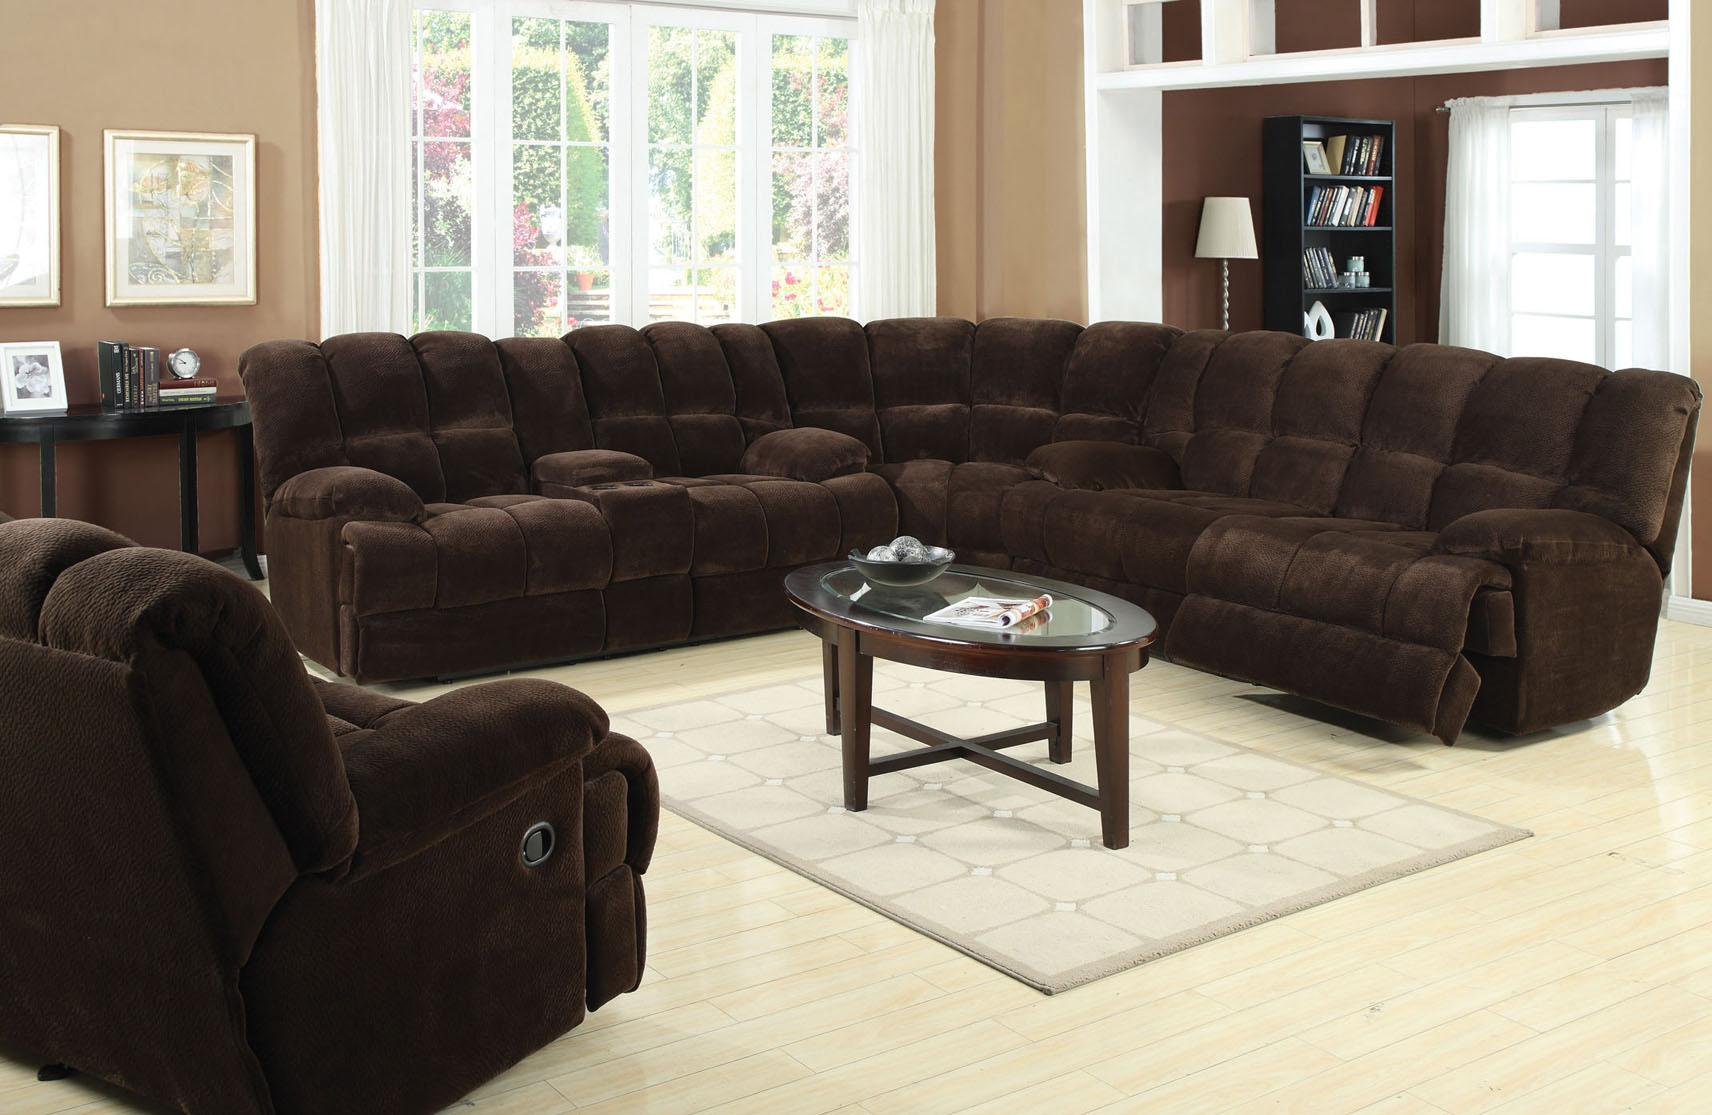 Acme Furniture Ahearn Casual Sectional Sofa Household